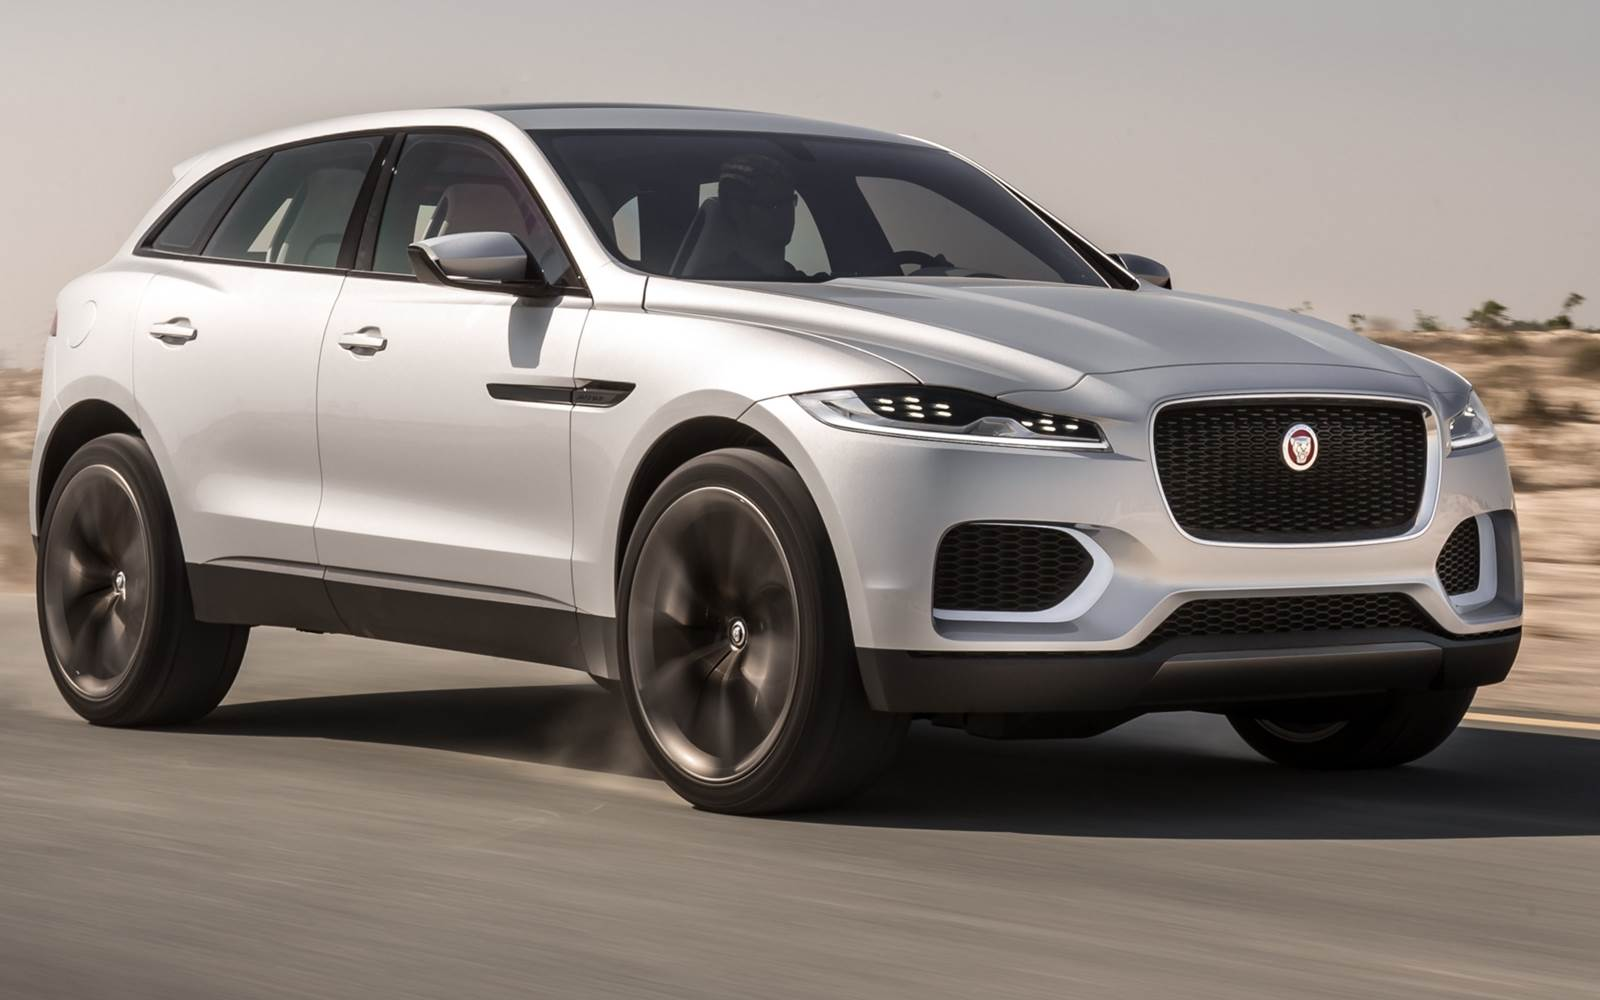 Jaguar Suv Price Uk C X17 Price New Cars Review